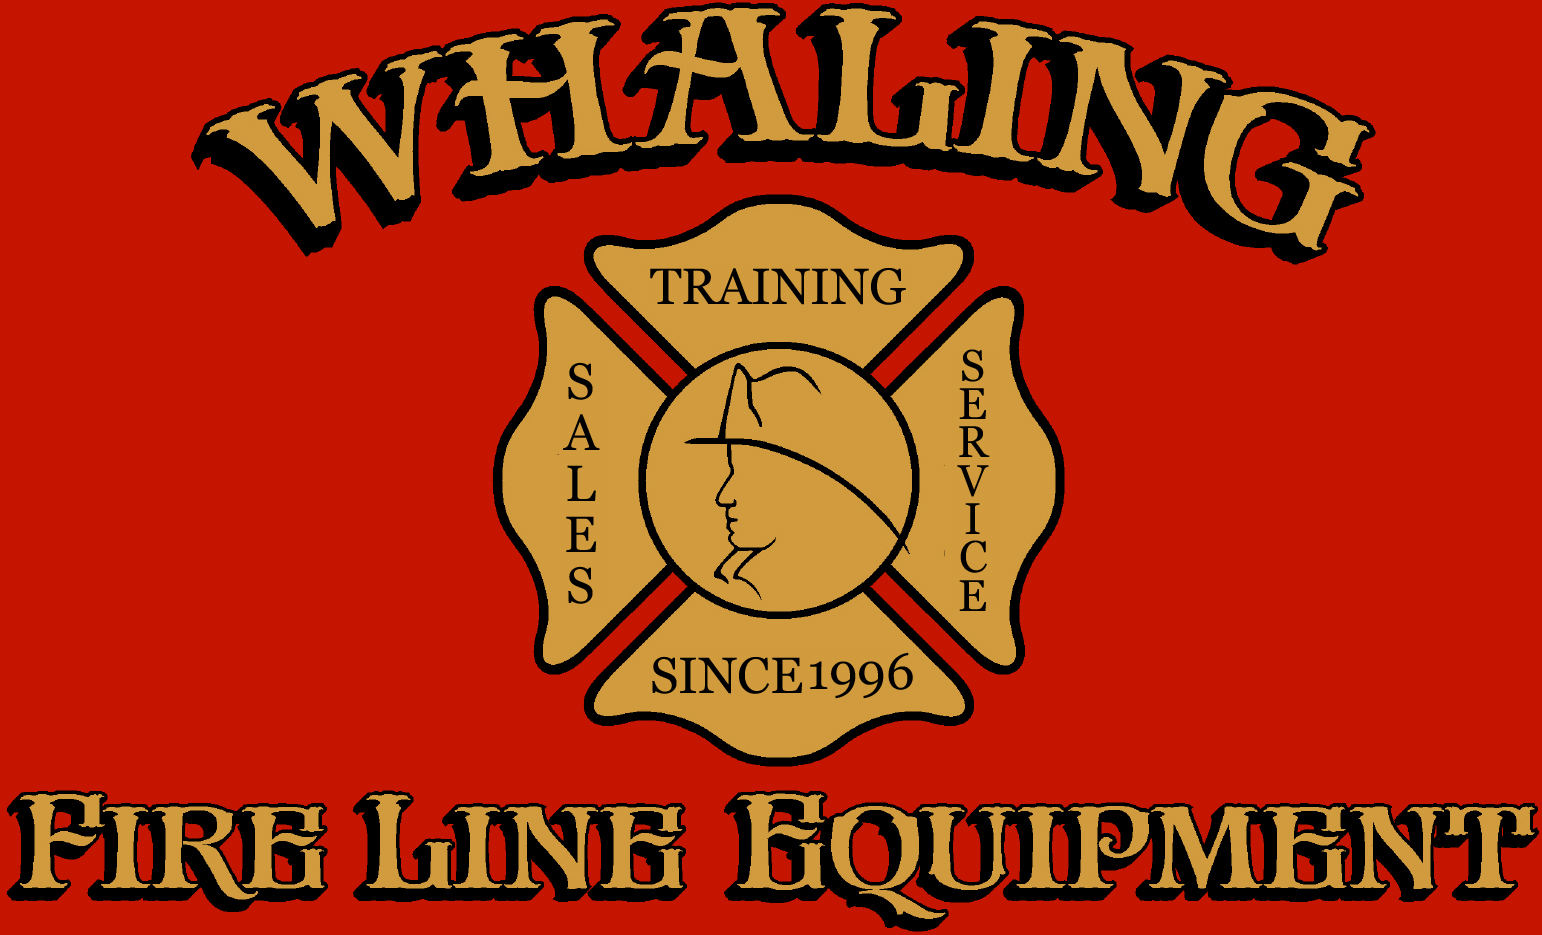 Whaleing Fire Line Equiptment